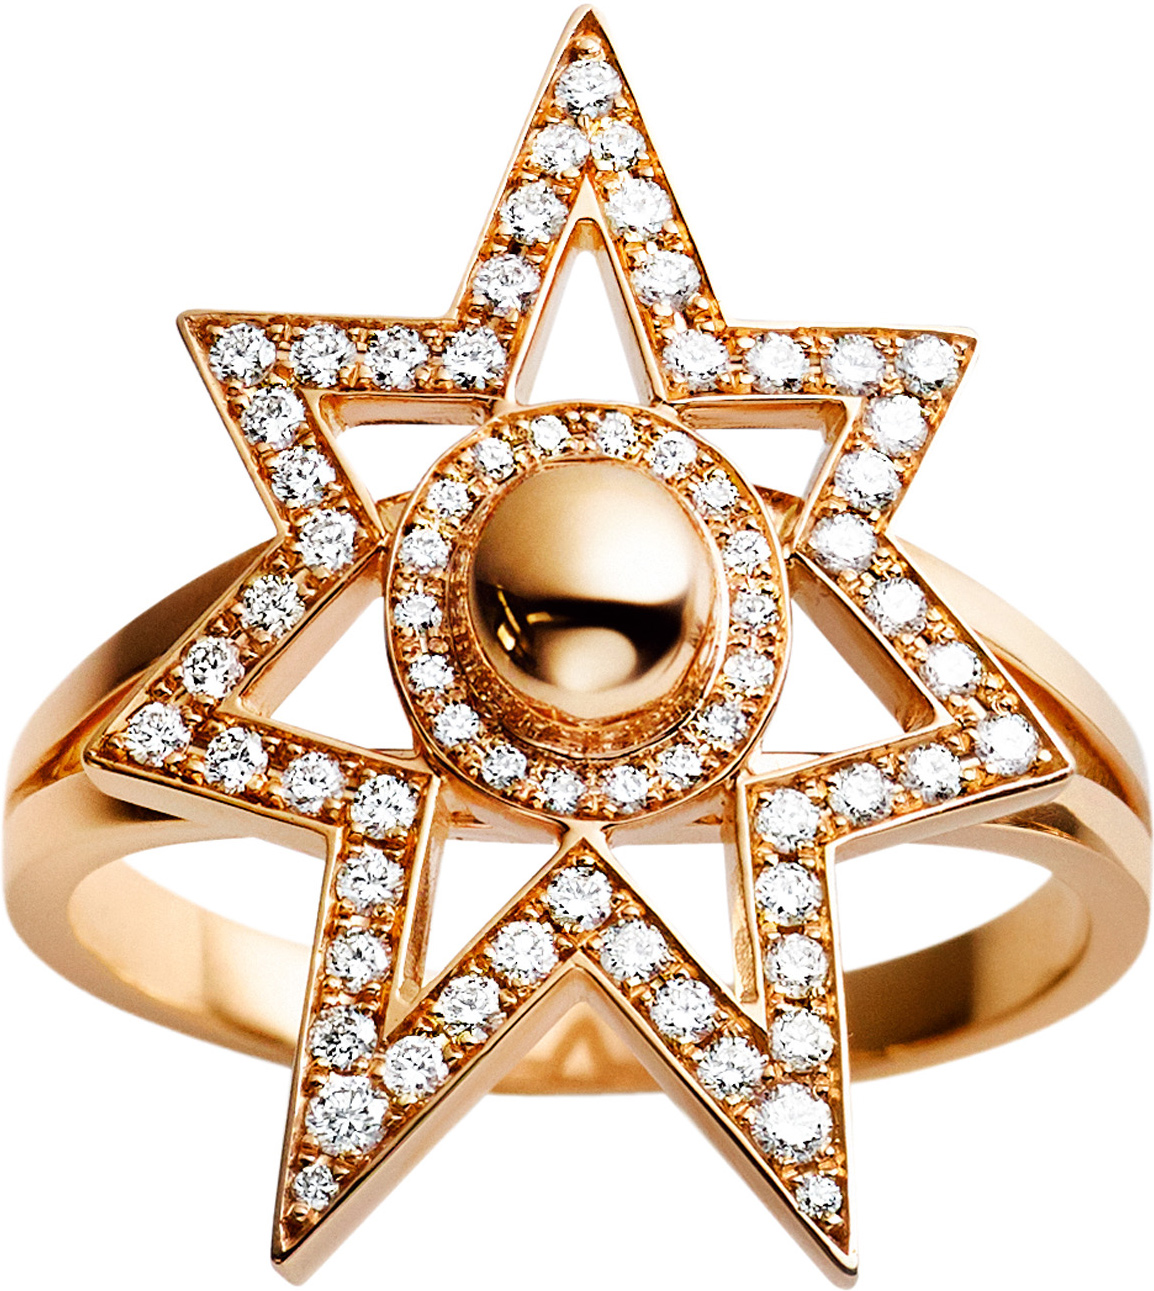 SHOOTING STAR Ring